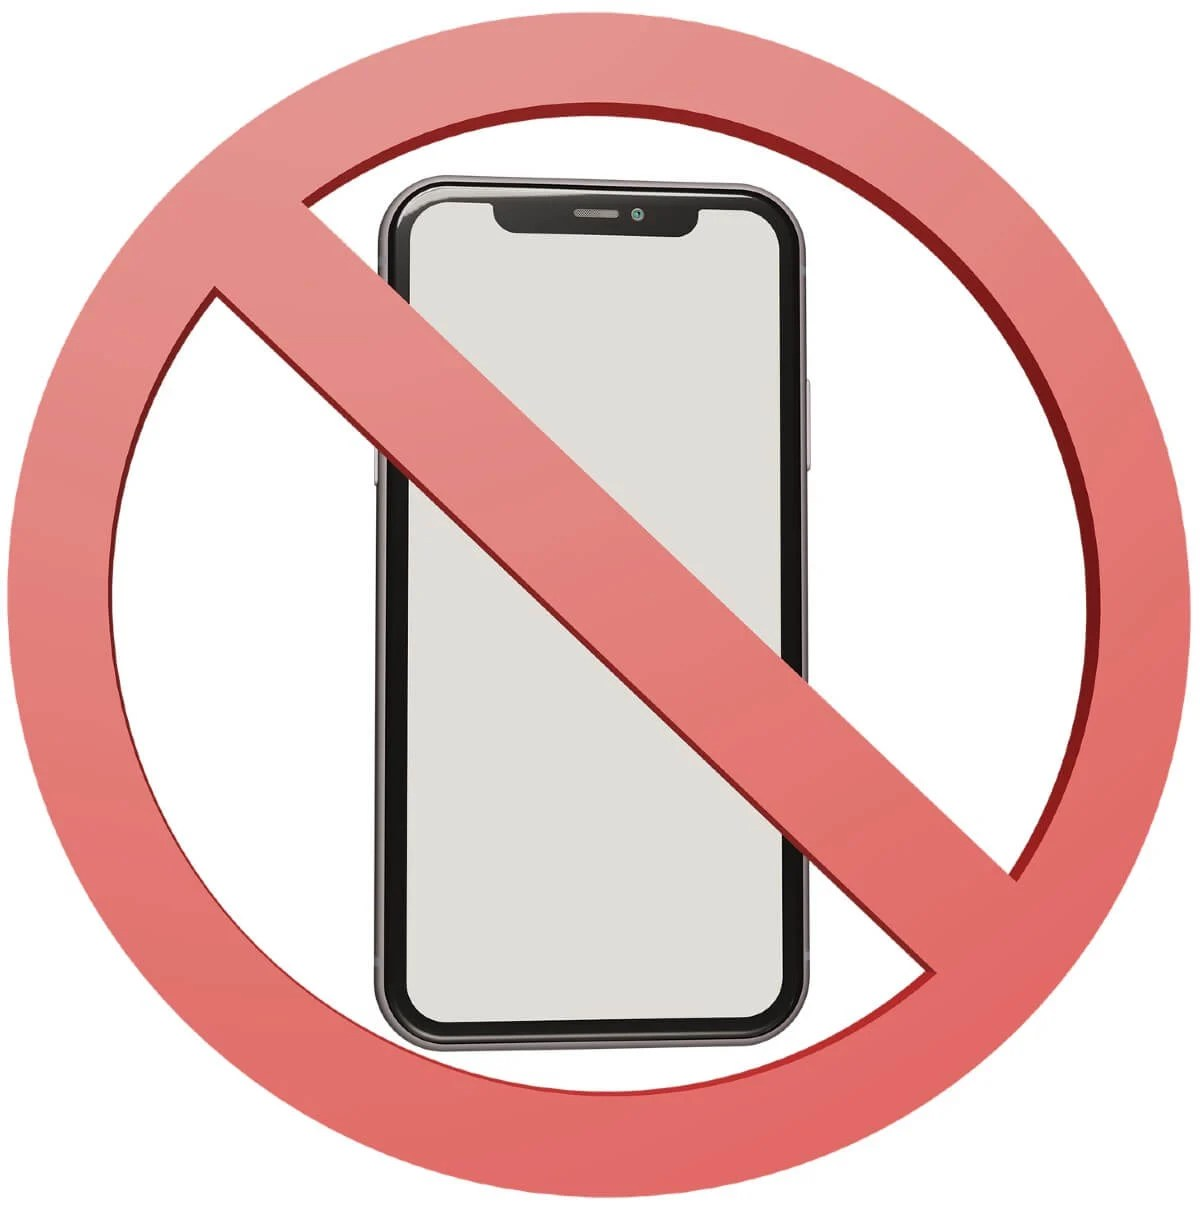 cell phone with a cross through it meaning no phones allowed